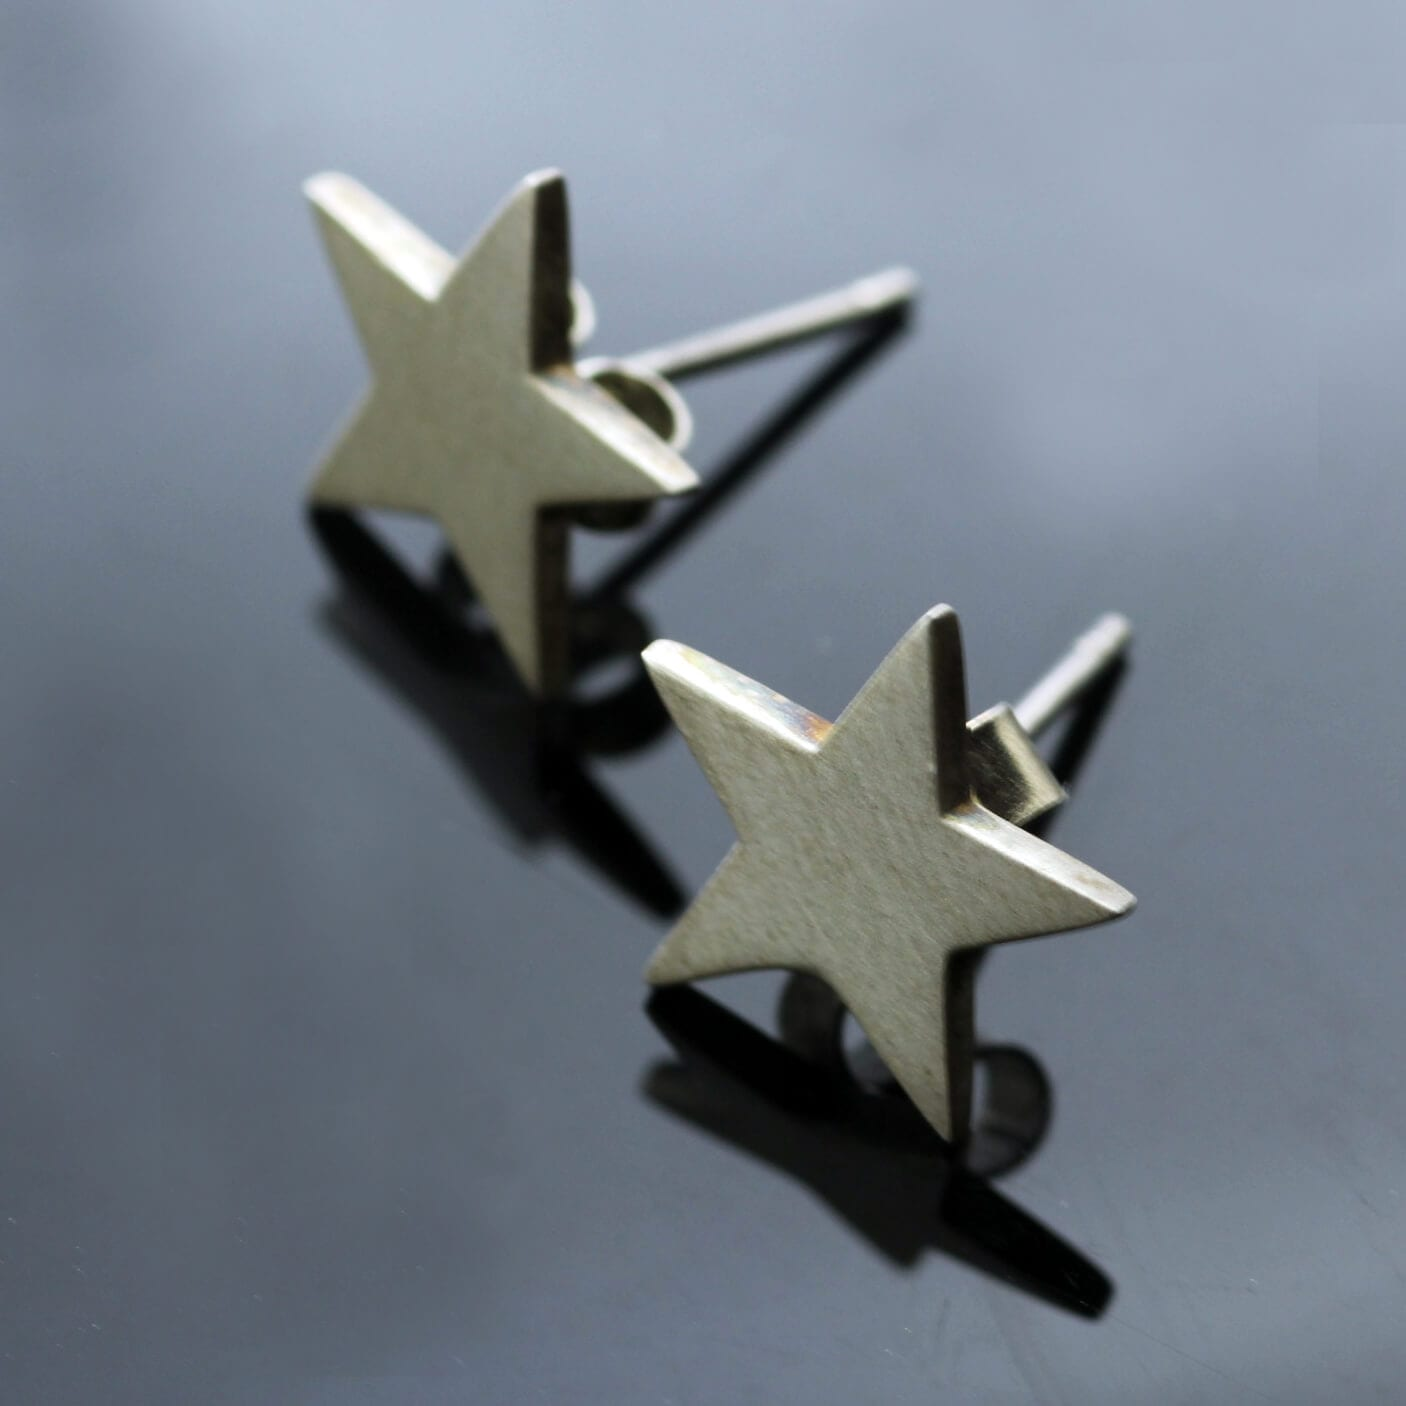 Handmade solid Sterling Silver Star stud earrings